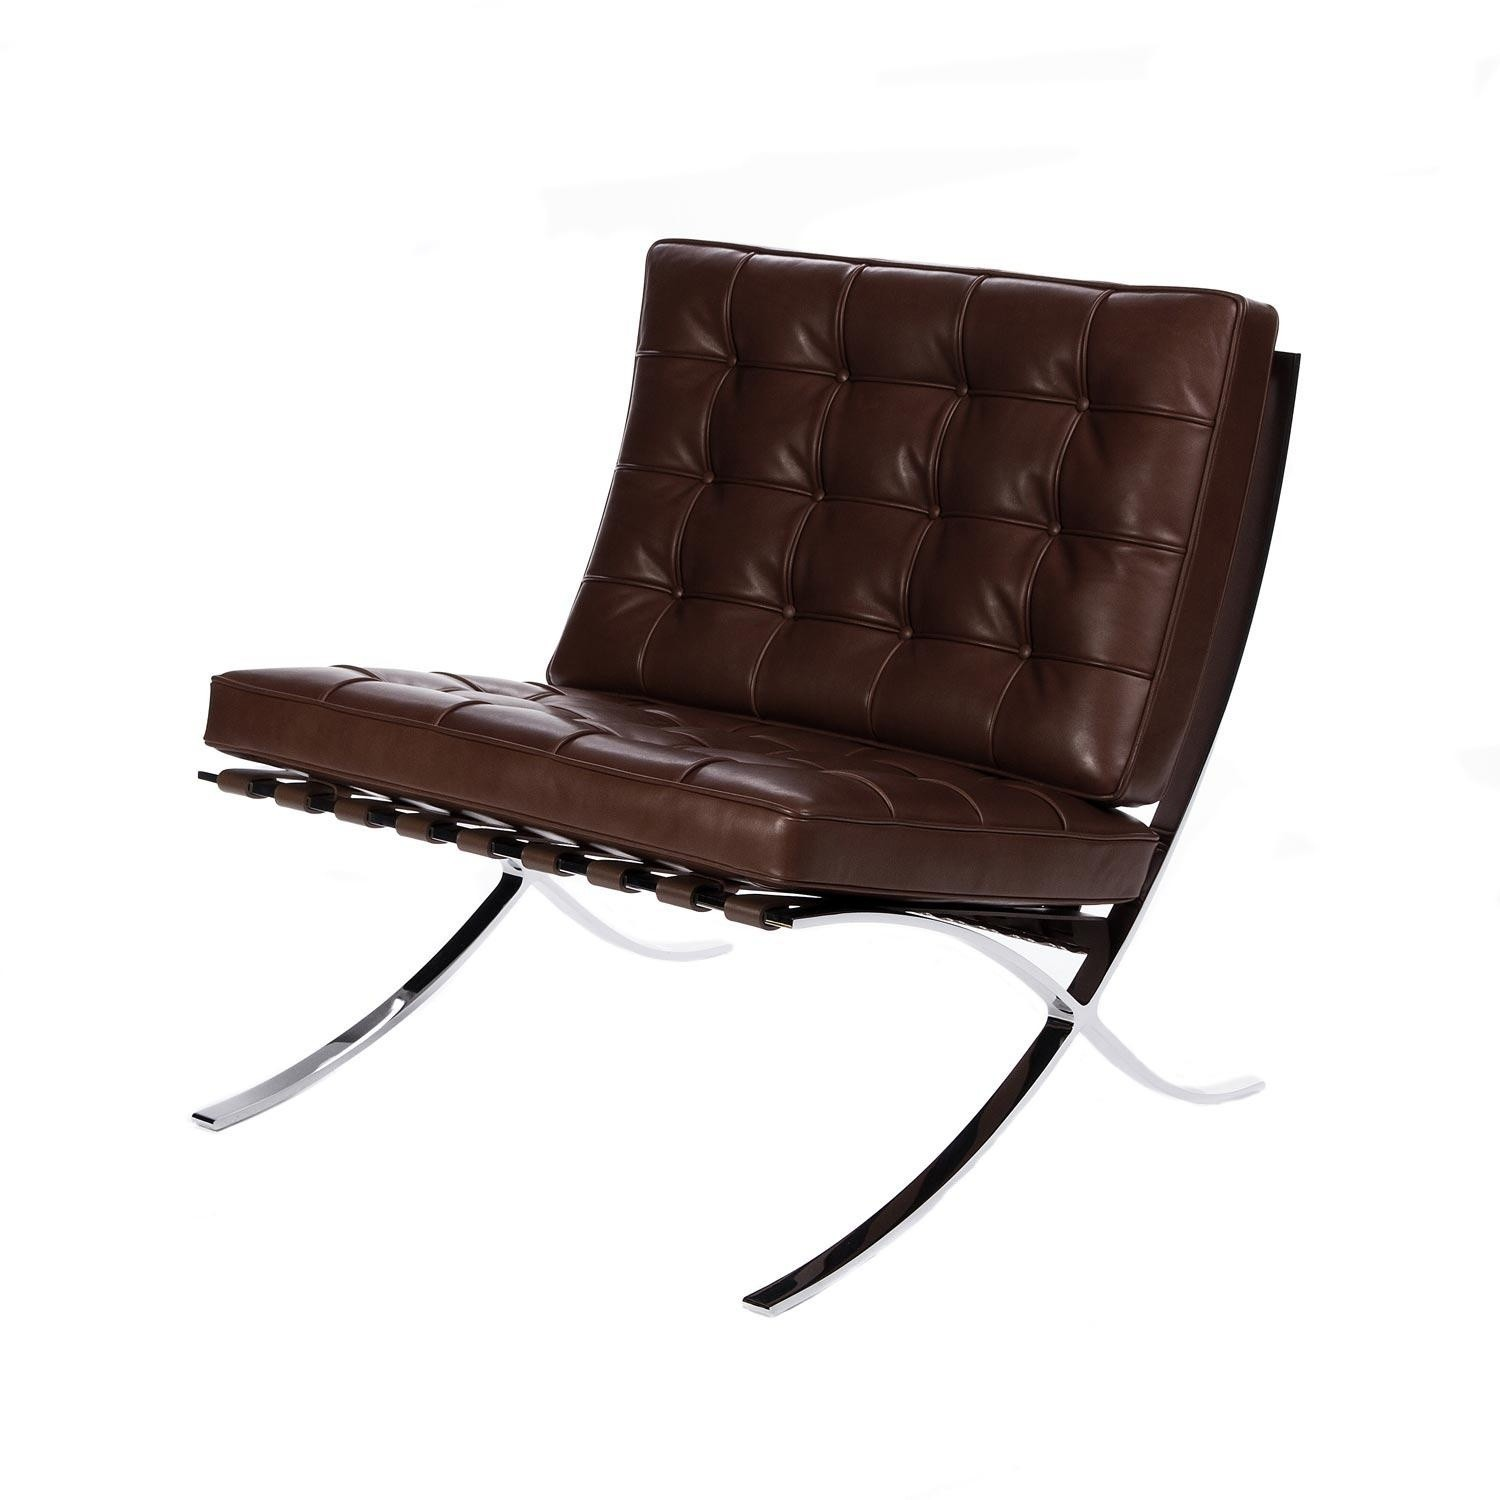 Vintage Sessel Knoll Barcelona Mies Van Der Rohe Relax Chair